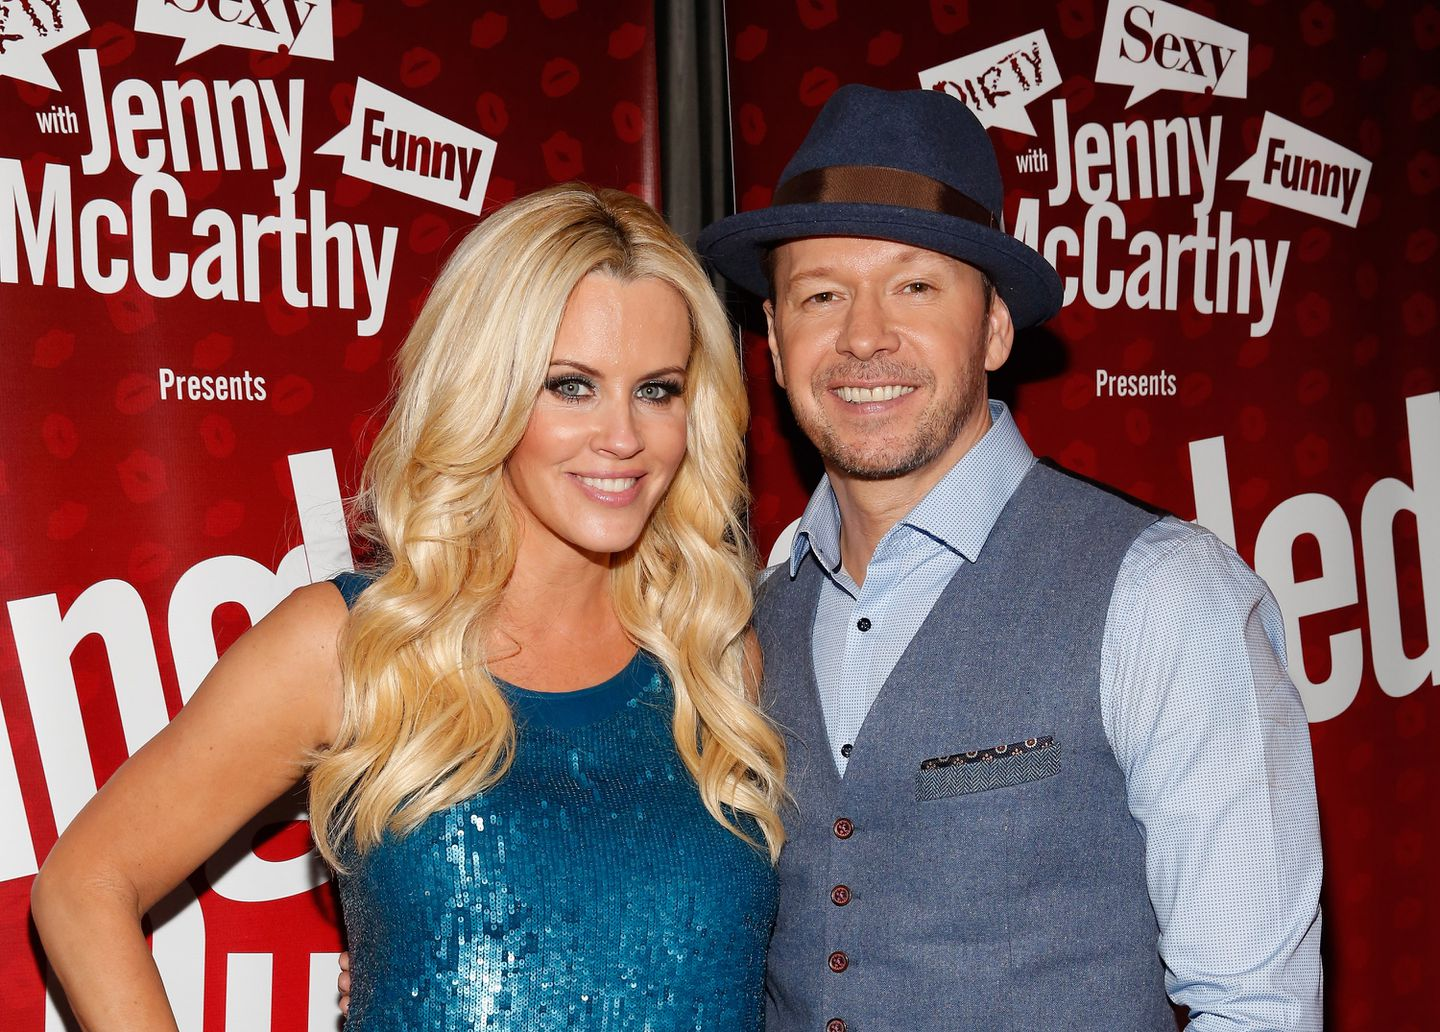 Wahlberg wives at odds? - The Boston Globe